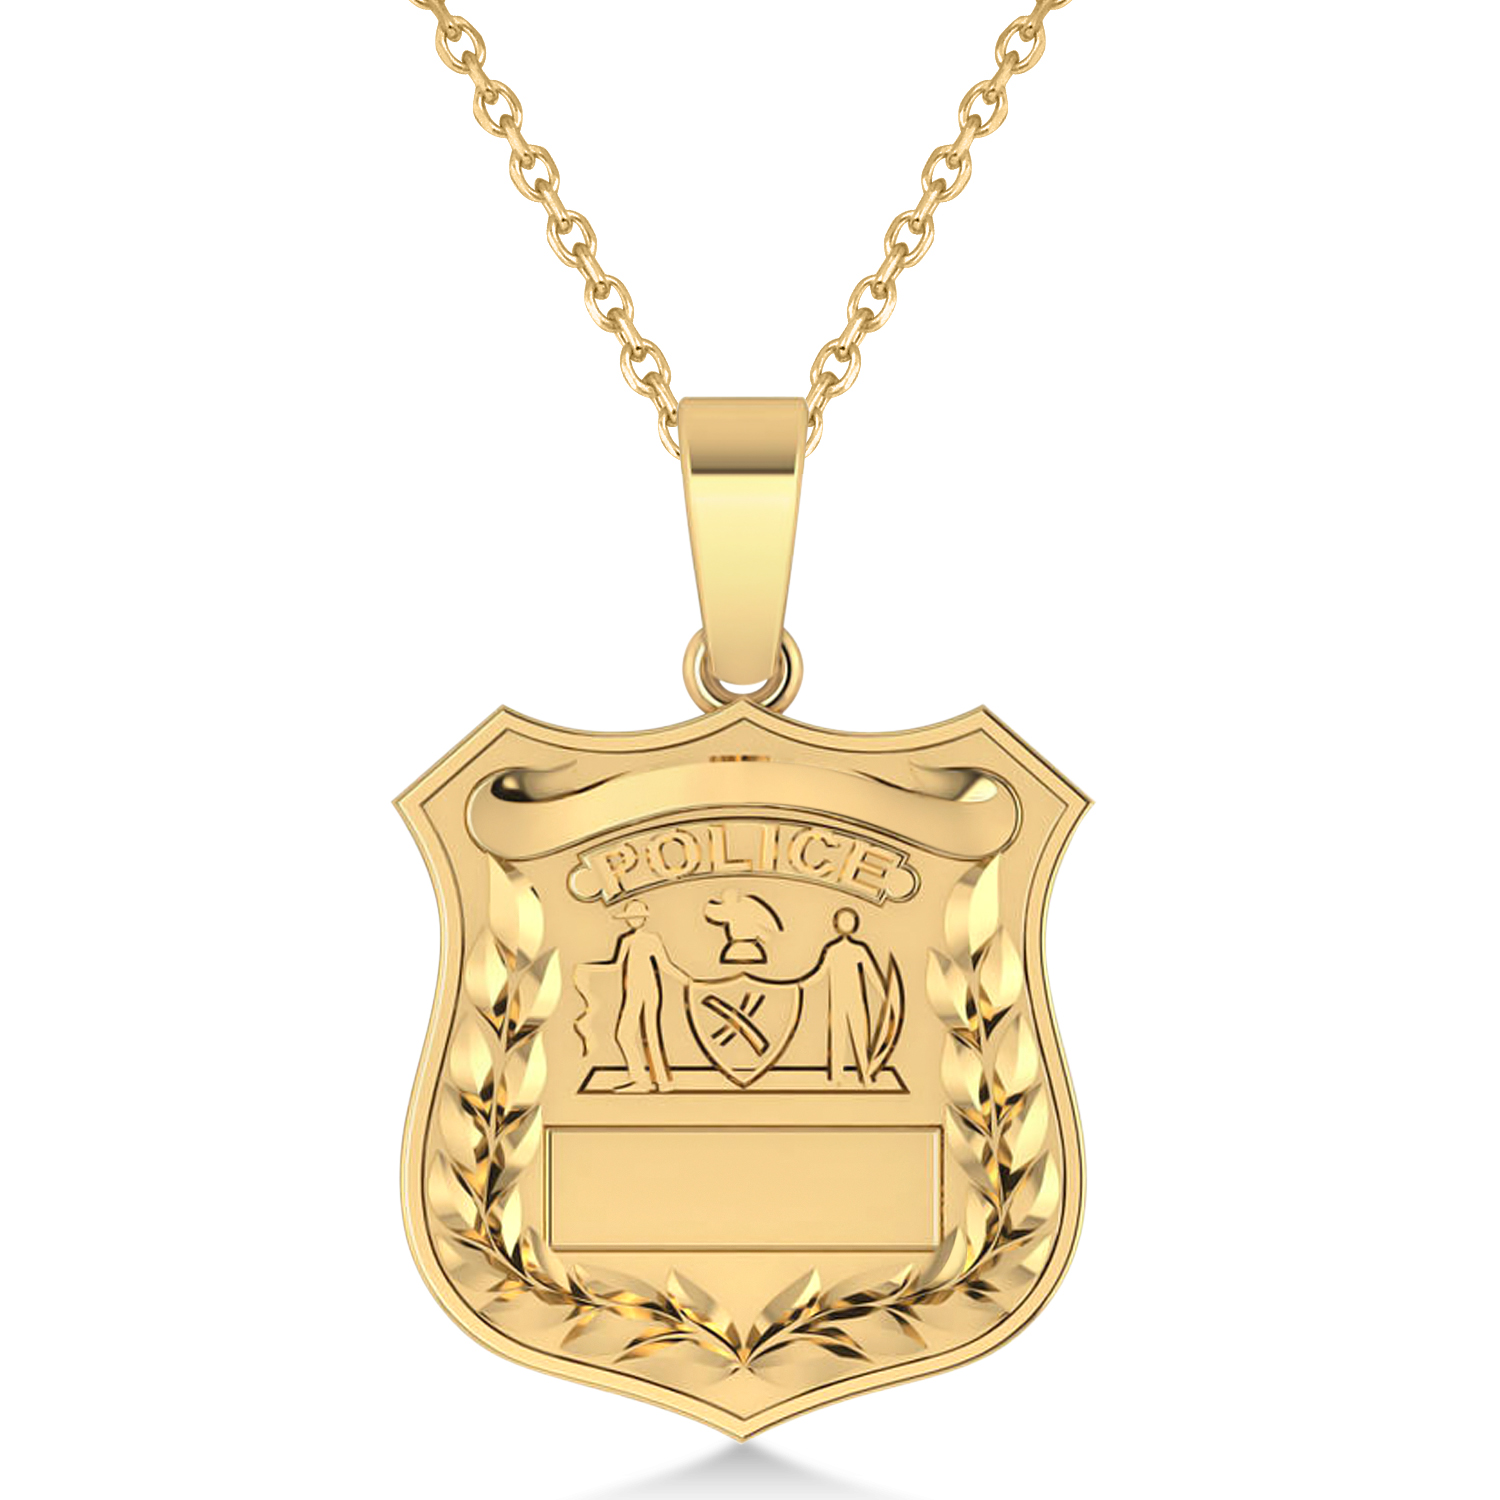 Police Department Badge Pendant Necklace 14k Yellow Gold